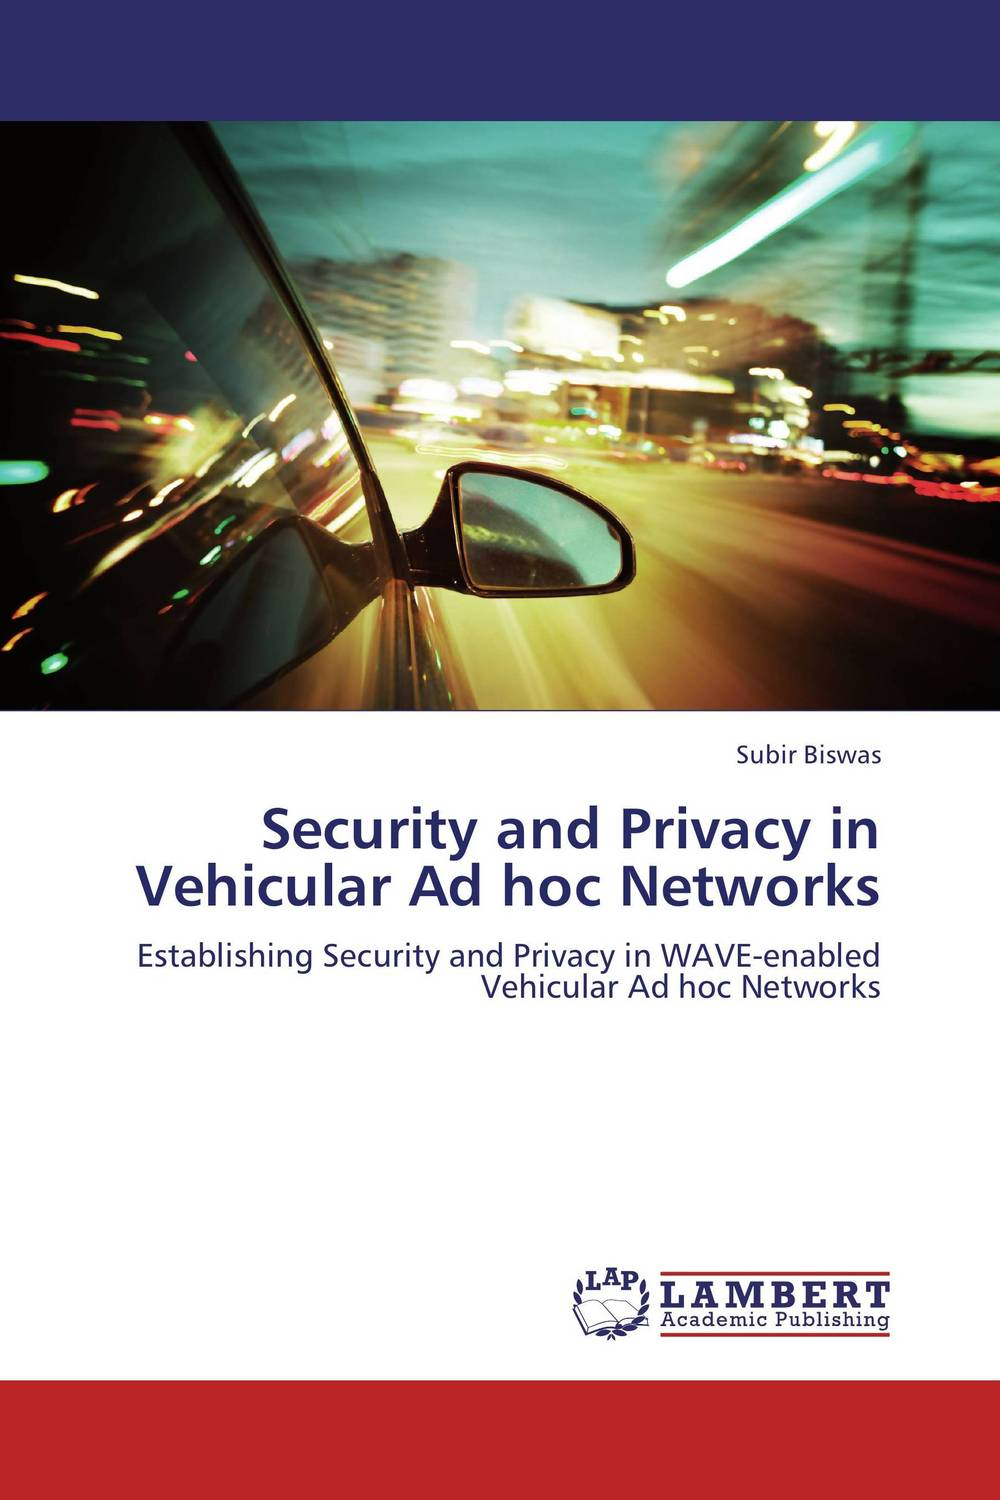 Security and Privacy in Vehicular Ad hoc Networks belousov a security features of banknotes and other documents methods of authentication manual денежные билеты бланки ценных бумаг и документов